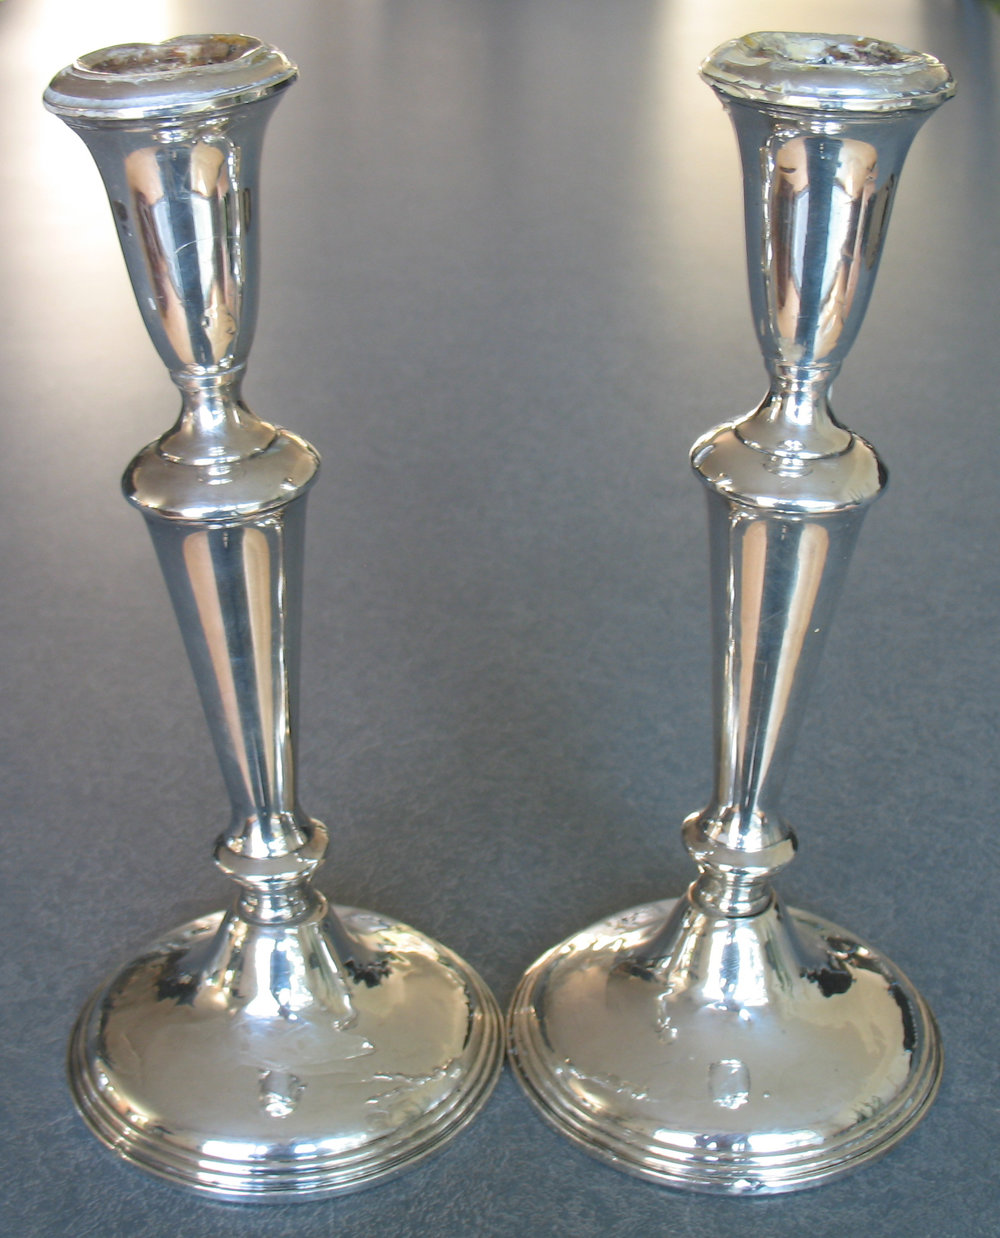 Sterling-silver-candlesticks-leaning-over-before-repair.jpg